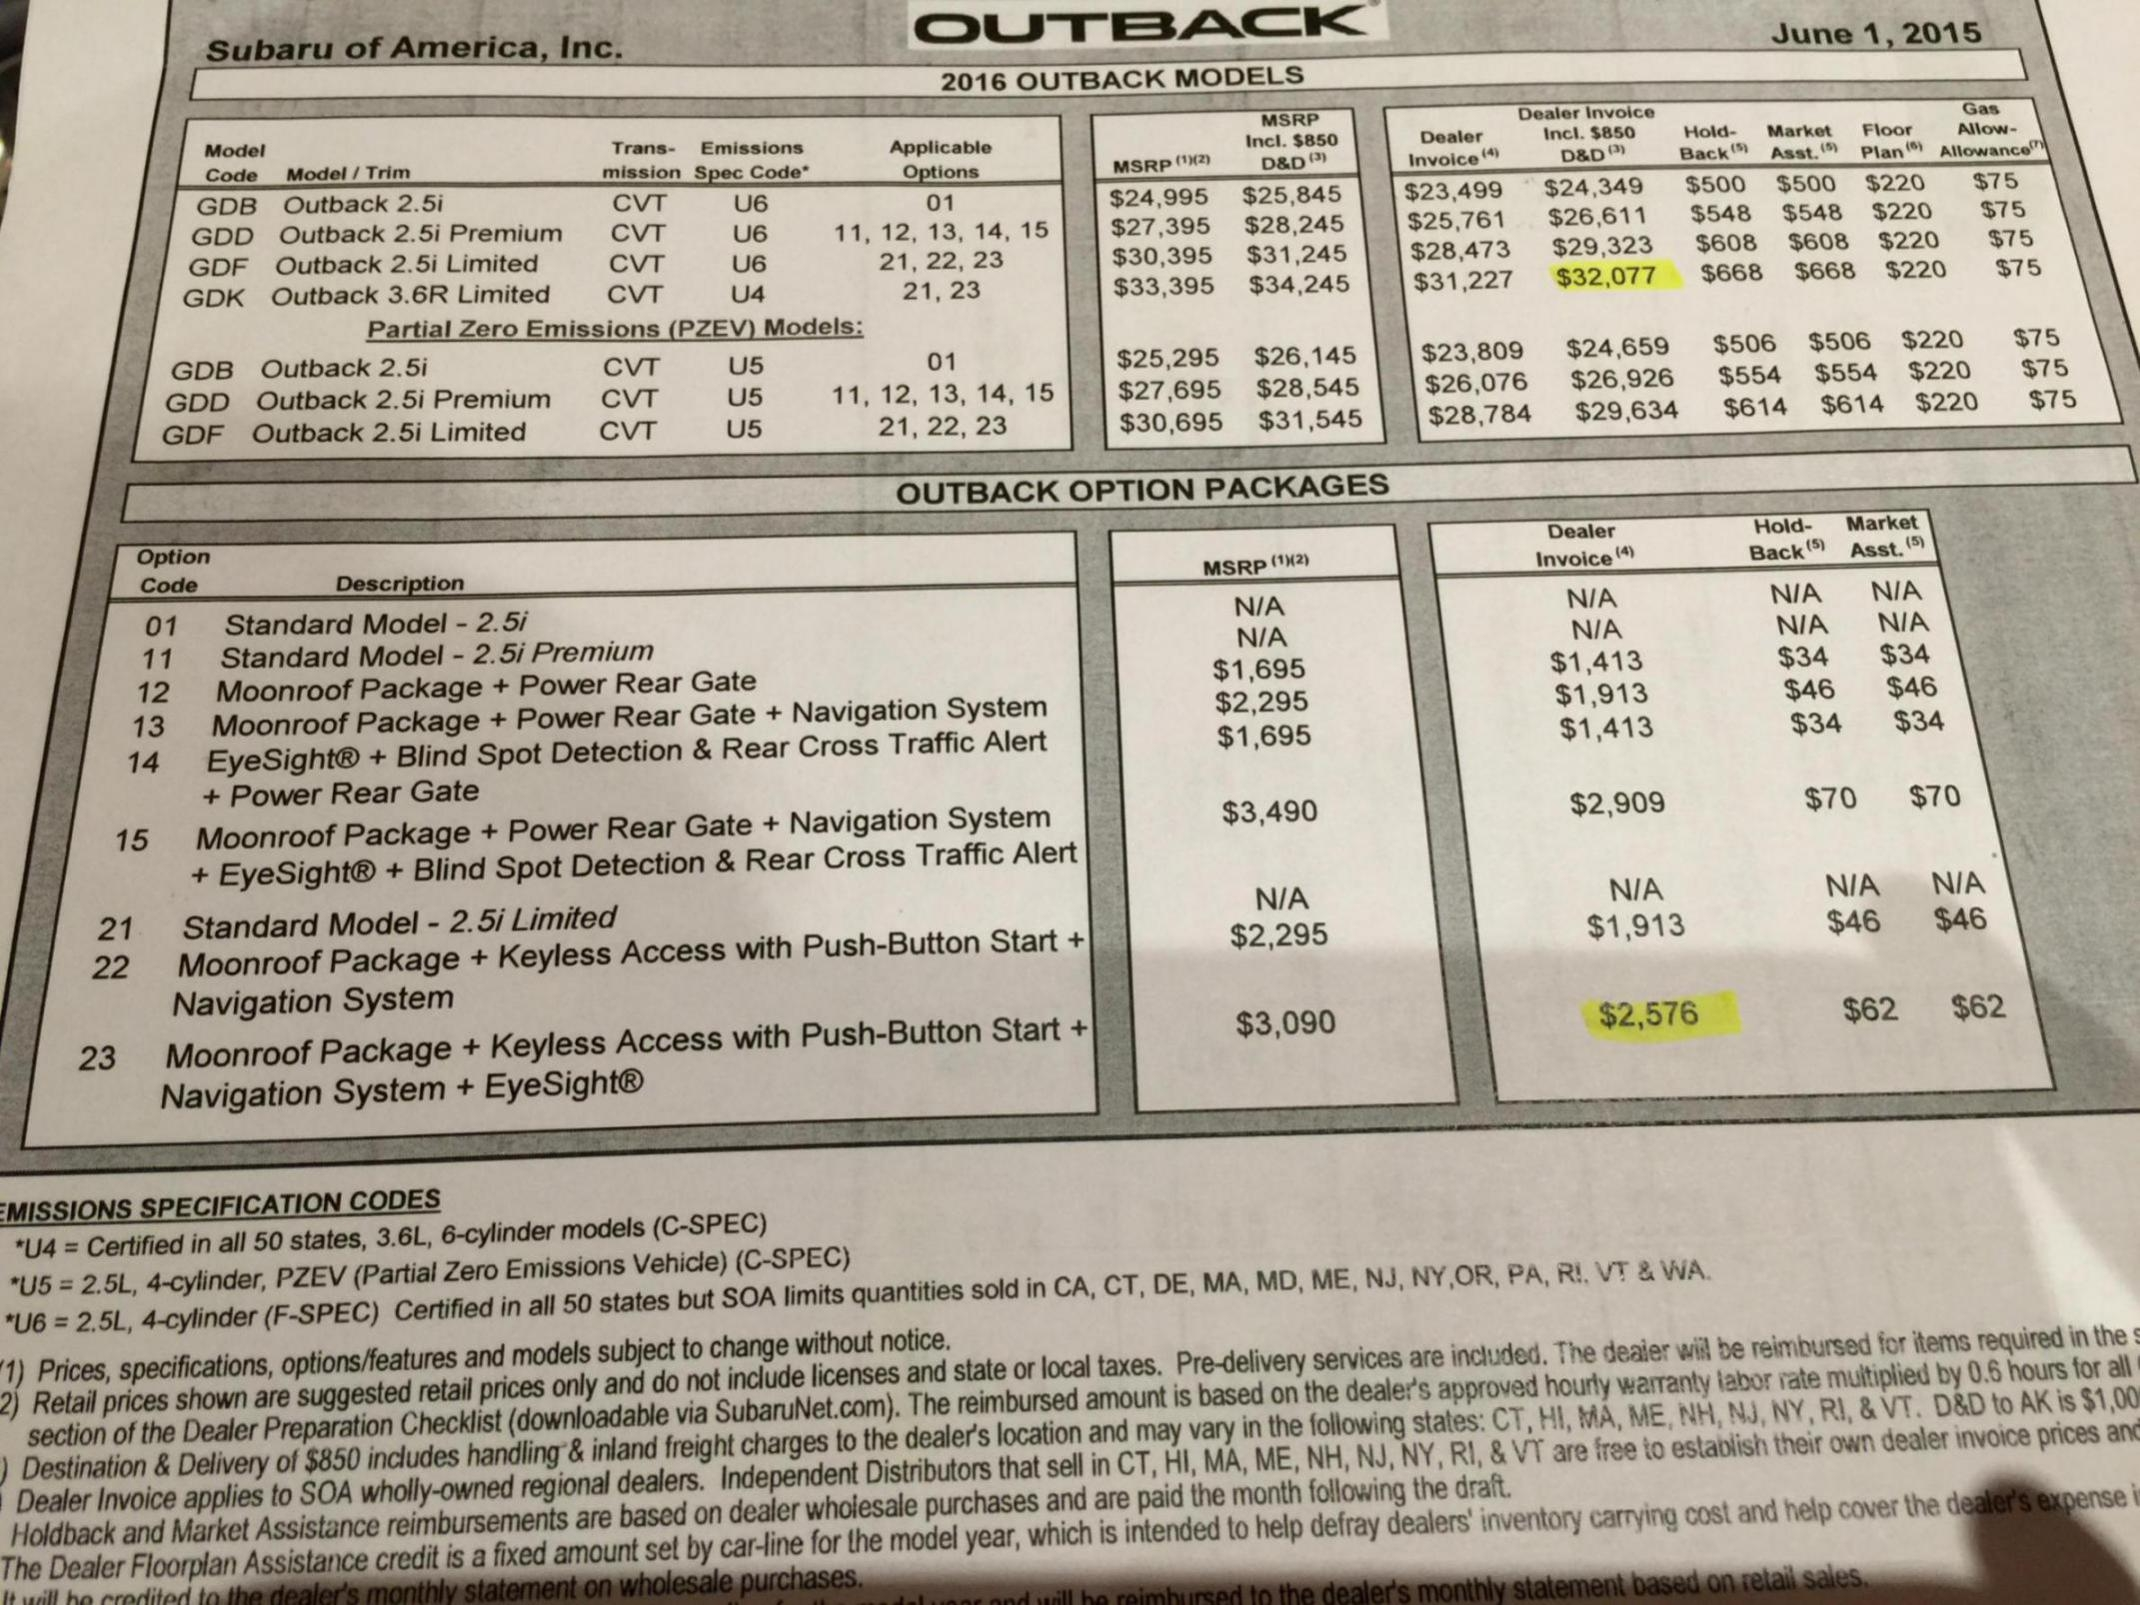 2015 Outback Invoice